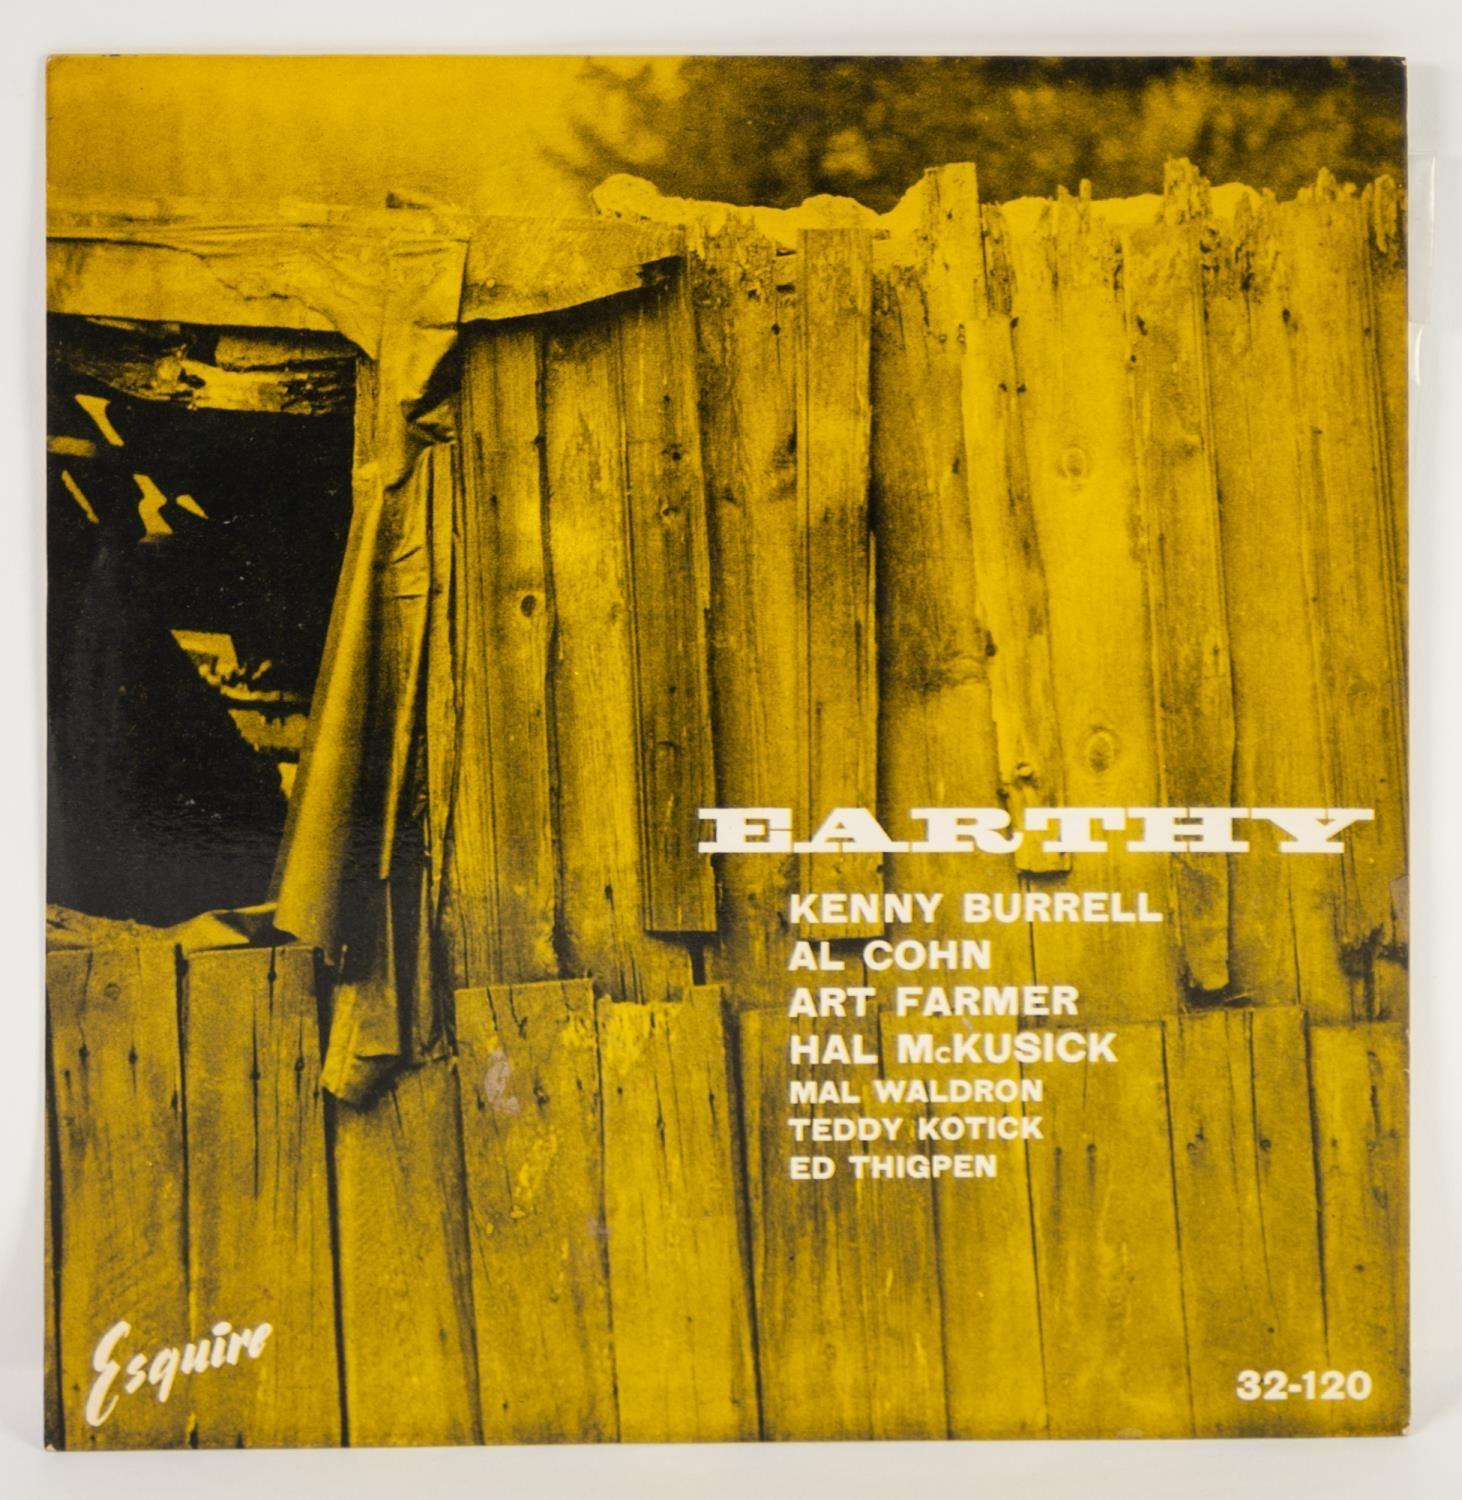 JAZZ, VINYL RECORDS- B IS FOR KENNY BURRELL-EARTHY (Prestige All Stars), Esquire (32-120).